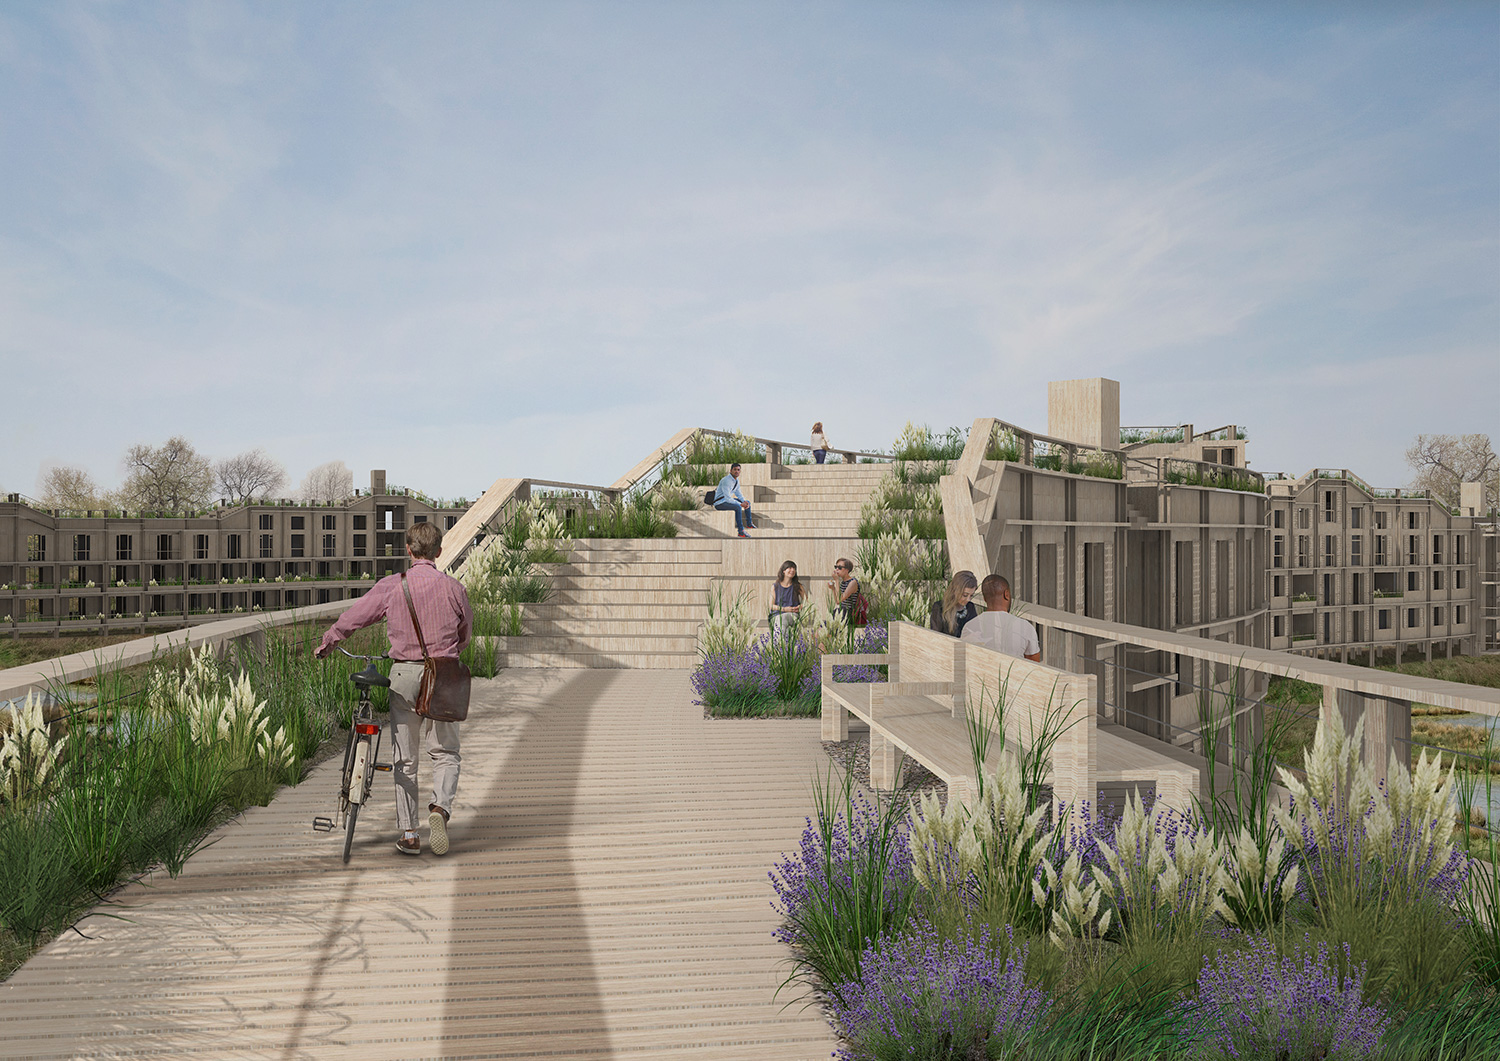 Walkway features planters, providing a ribbon of ecology that furthers the symbiotic nature of the project